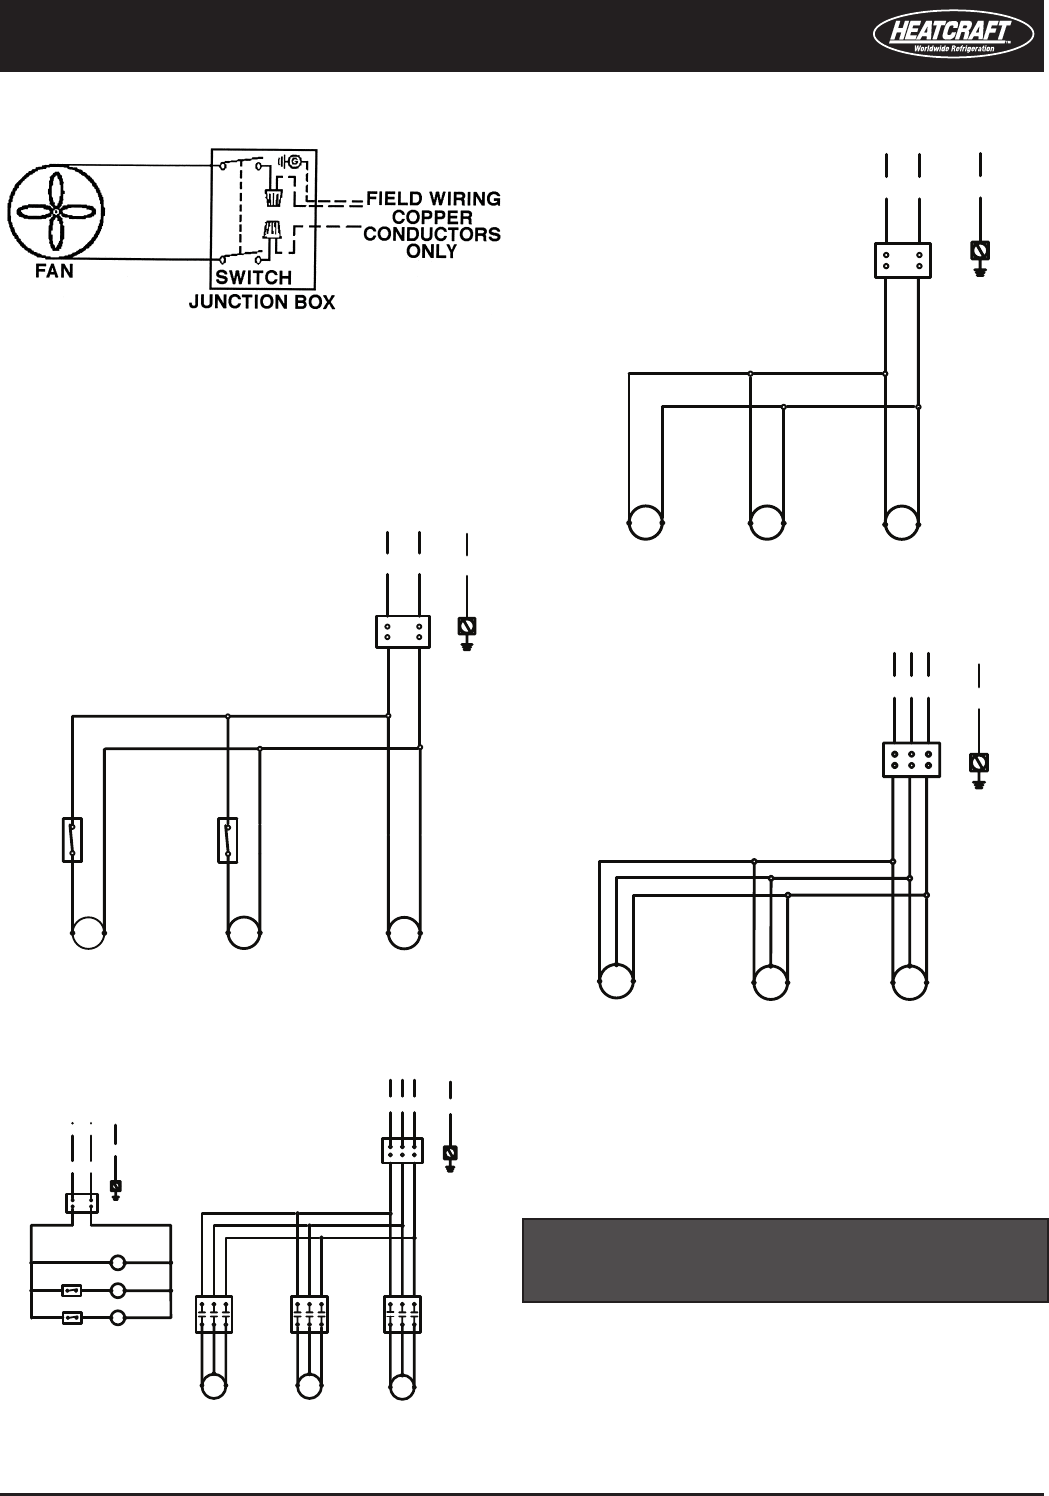 Heatcraft Evaporator Wiring Diagram Diagrams Schematics A Capacitor To 2 Amps Famous Bohn Gallery Electrical And Manual At Freezer